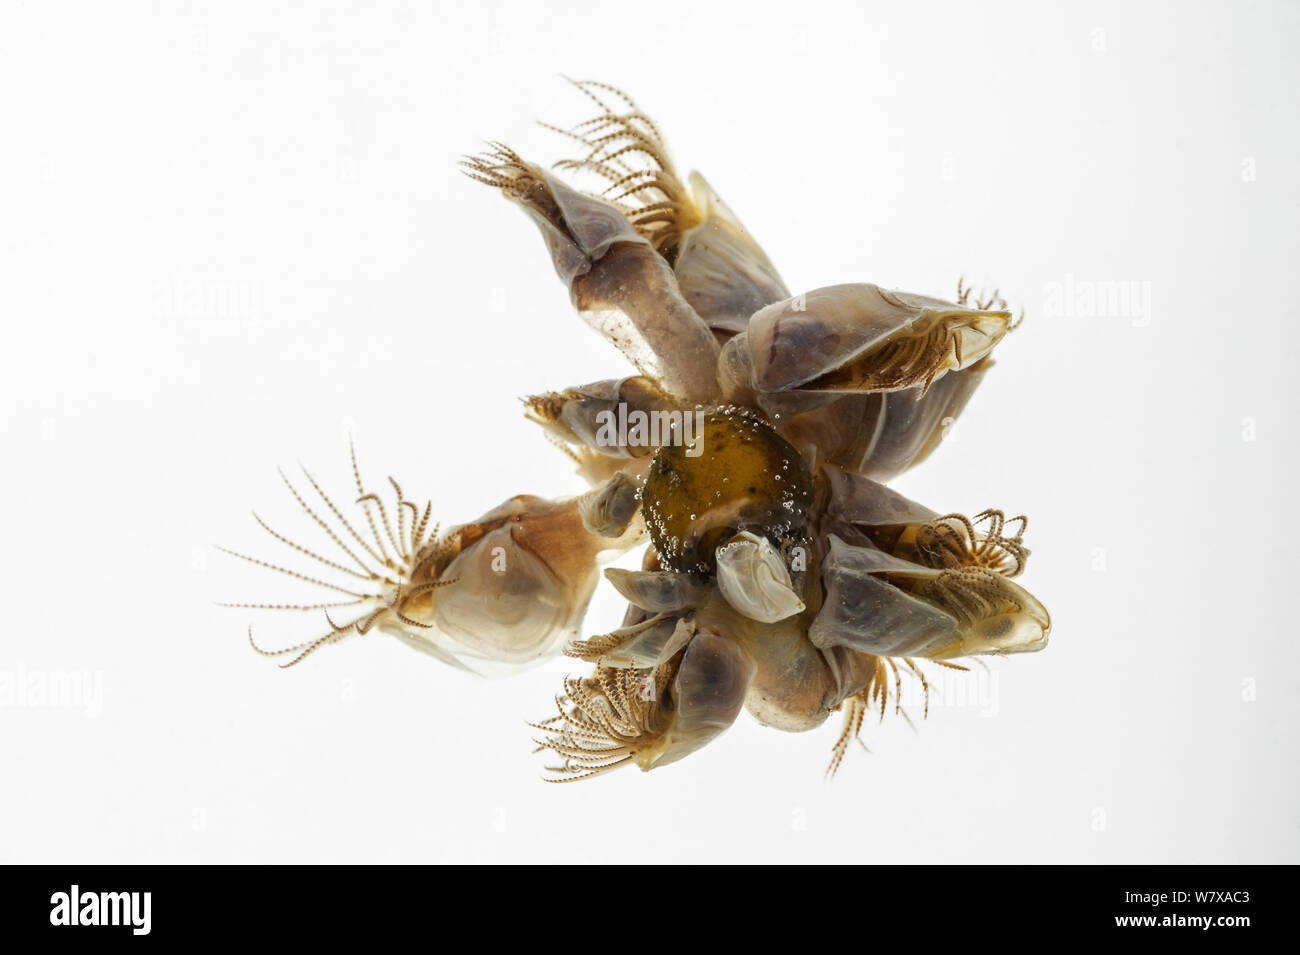 Blue goose barnacle / buoy barnacle (Dosima fascicularis) against white background, Bay of the Somme, France, May. Stock Photo